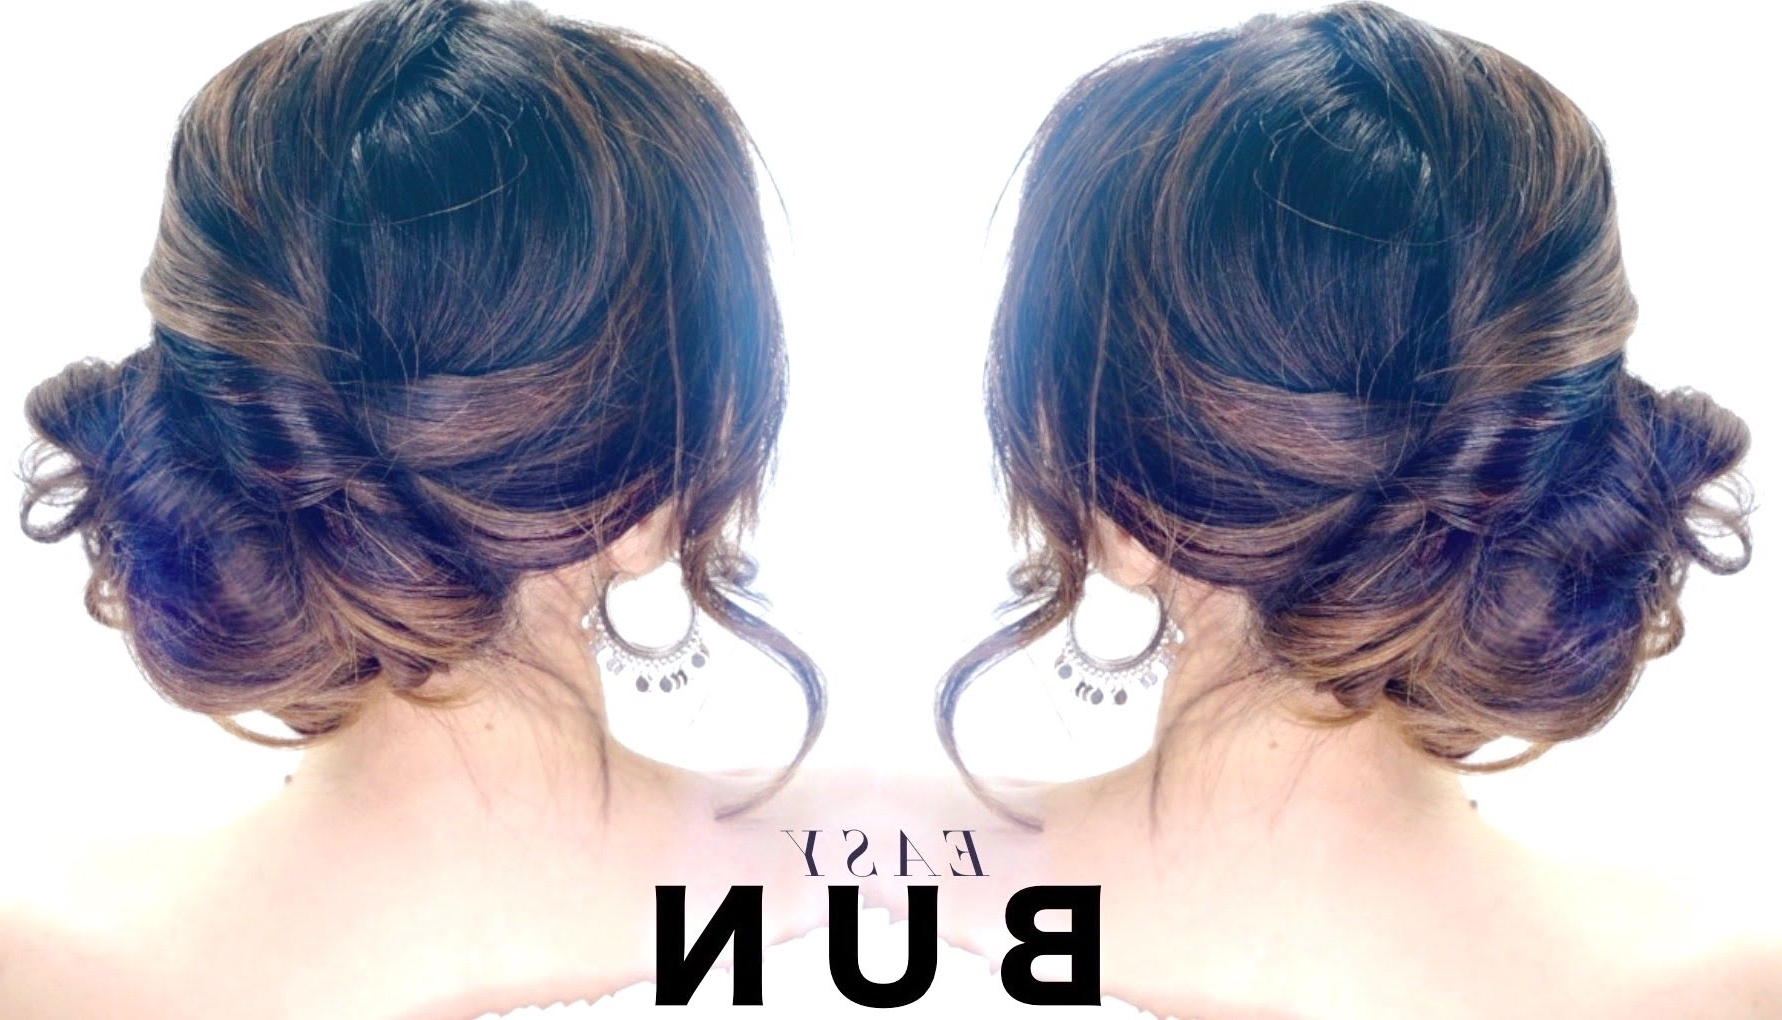 3 Minute Elegant Side Bun Hairstyle ☆ Easy Summer Updo Hairstyles Throughout Trendy Simple Side Messy Ponytail Hairstyles (View 4 of 20)